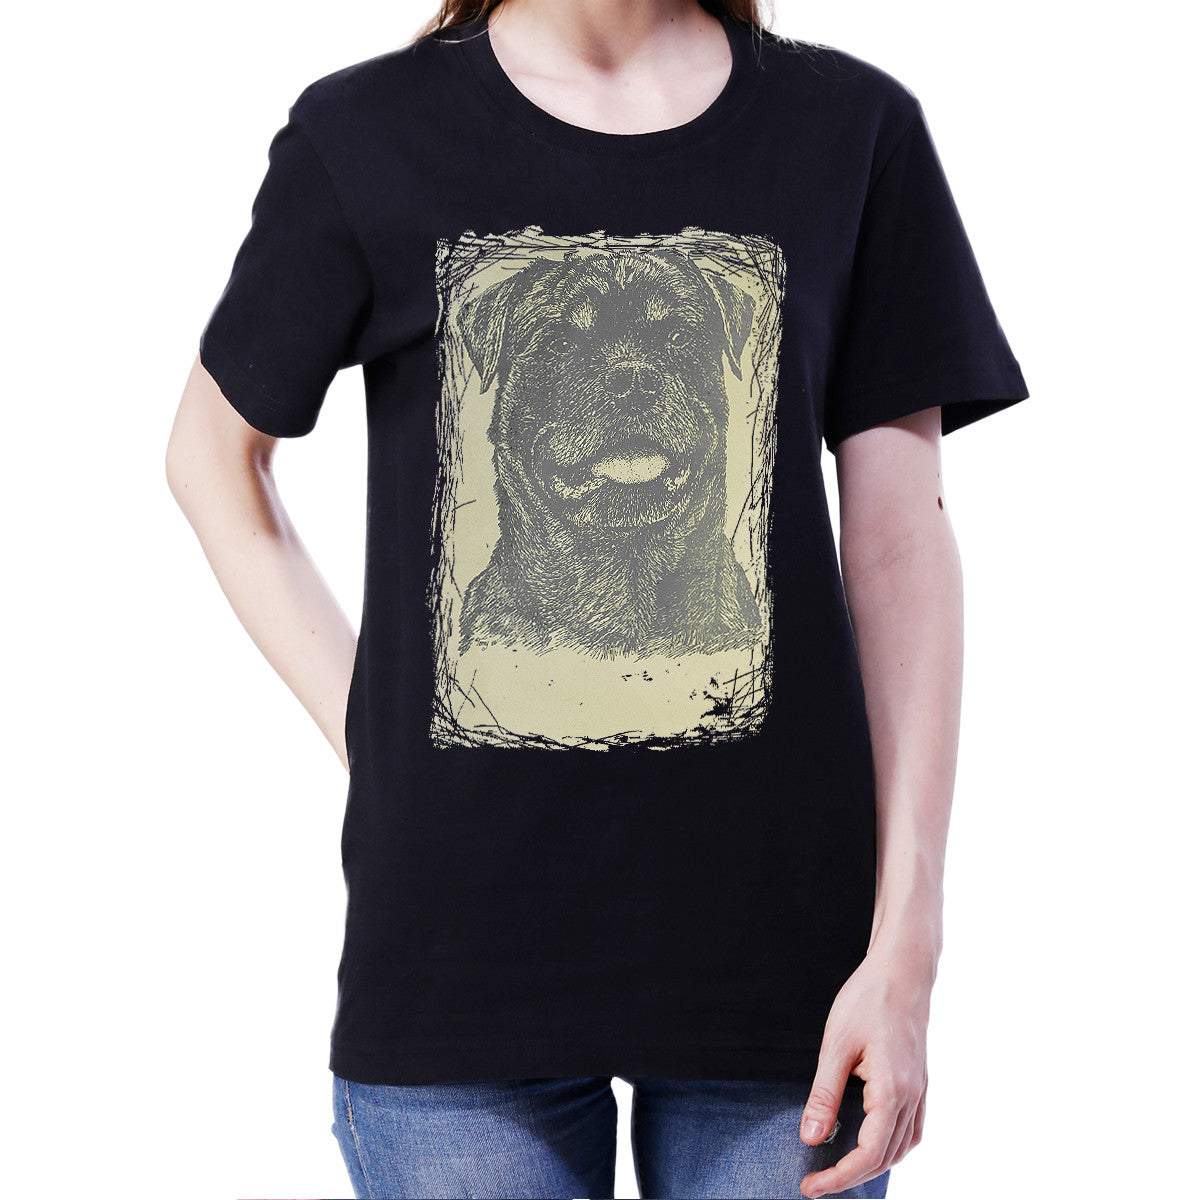 Limited Edition Rottweiler T Shirt Women Spun Tee